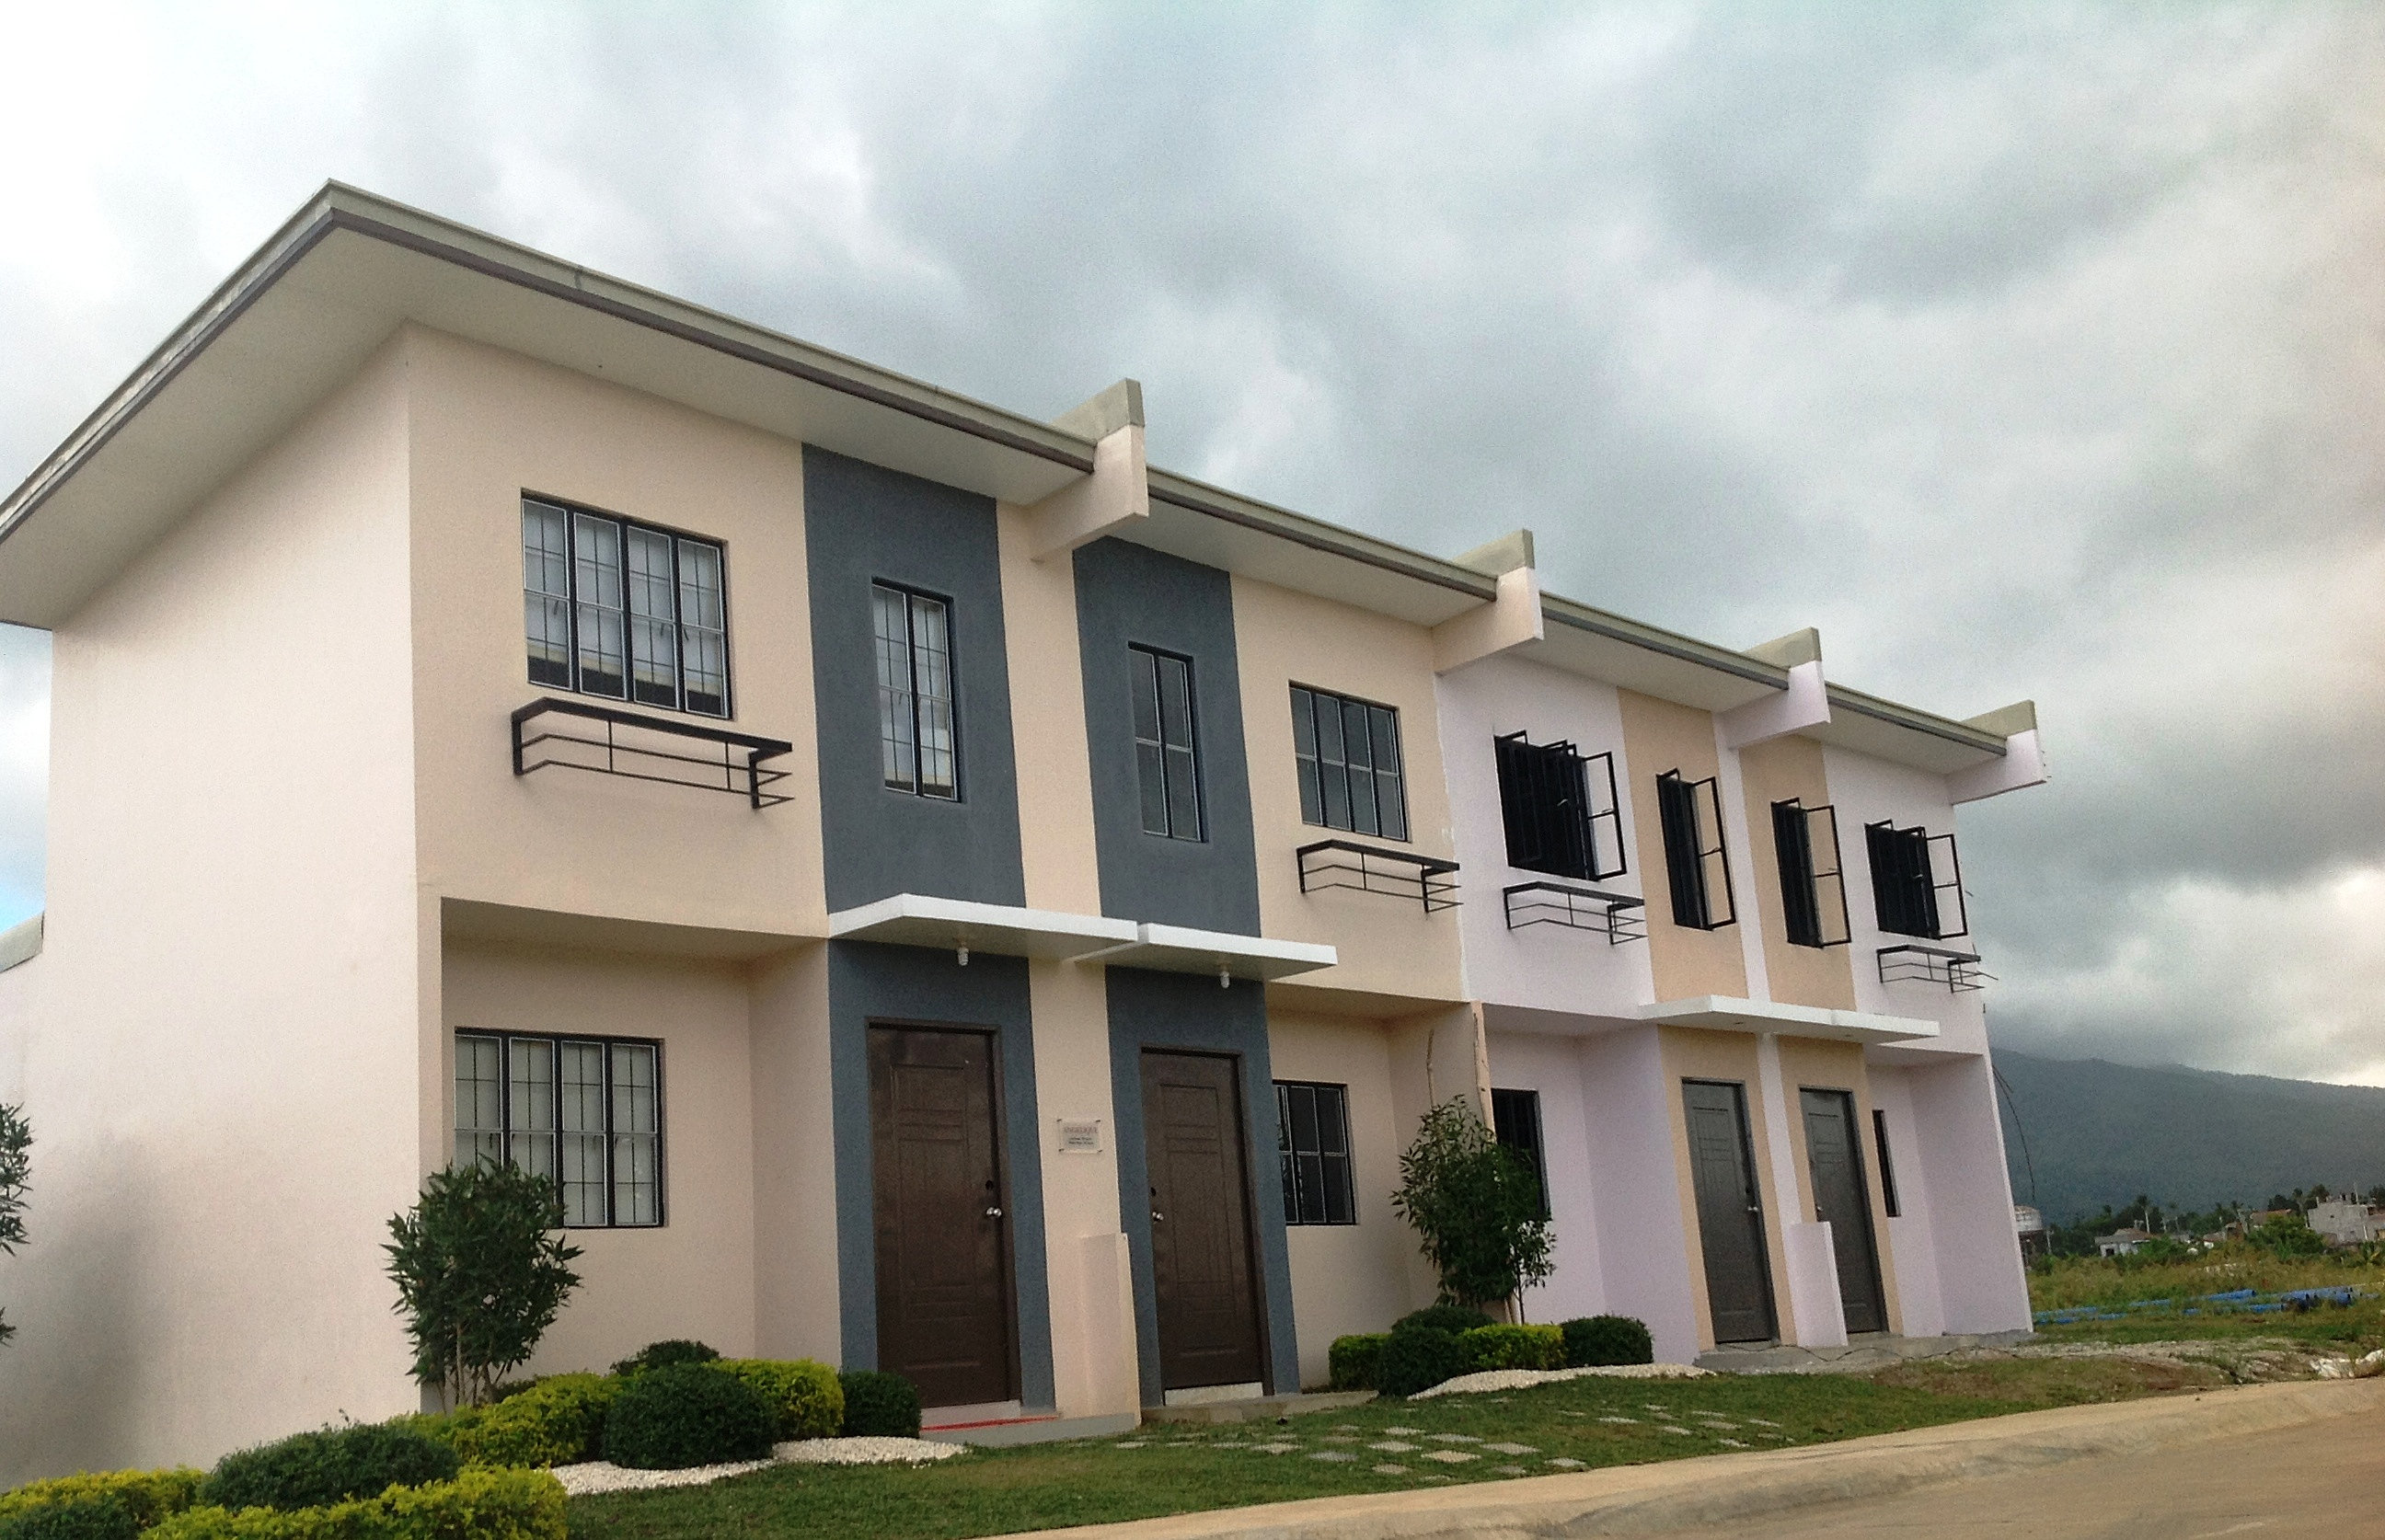 House for sale in general santos city - Low cost homes charming ...